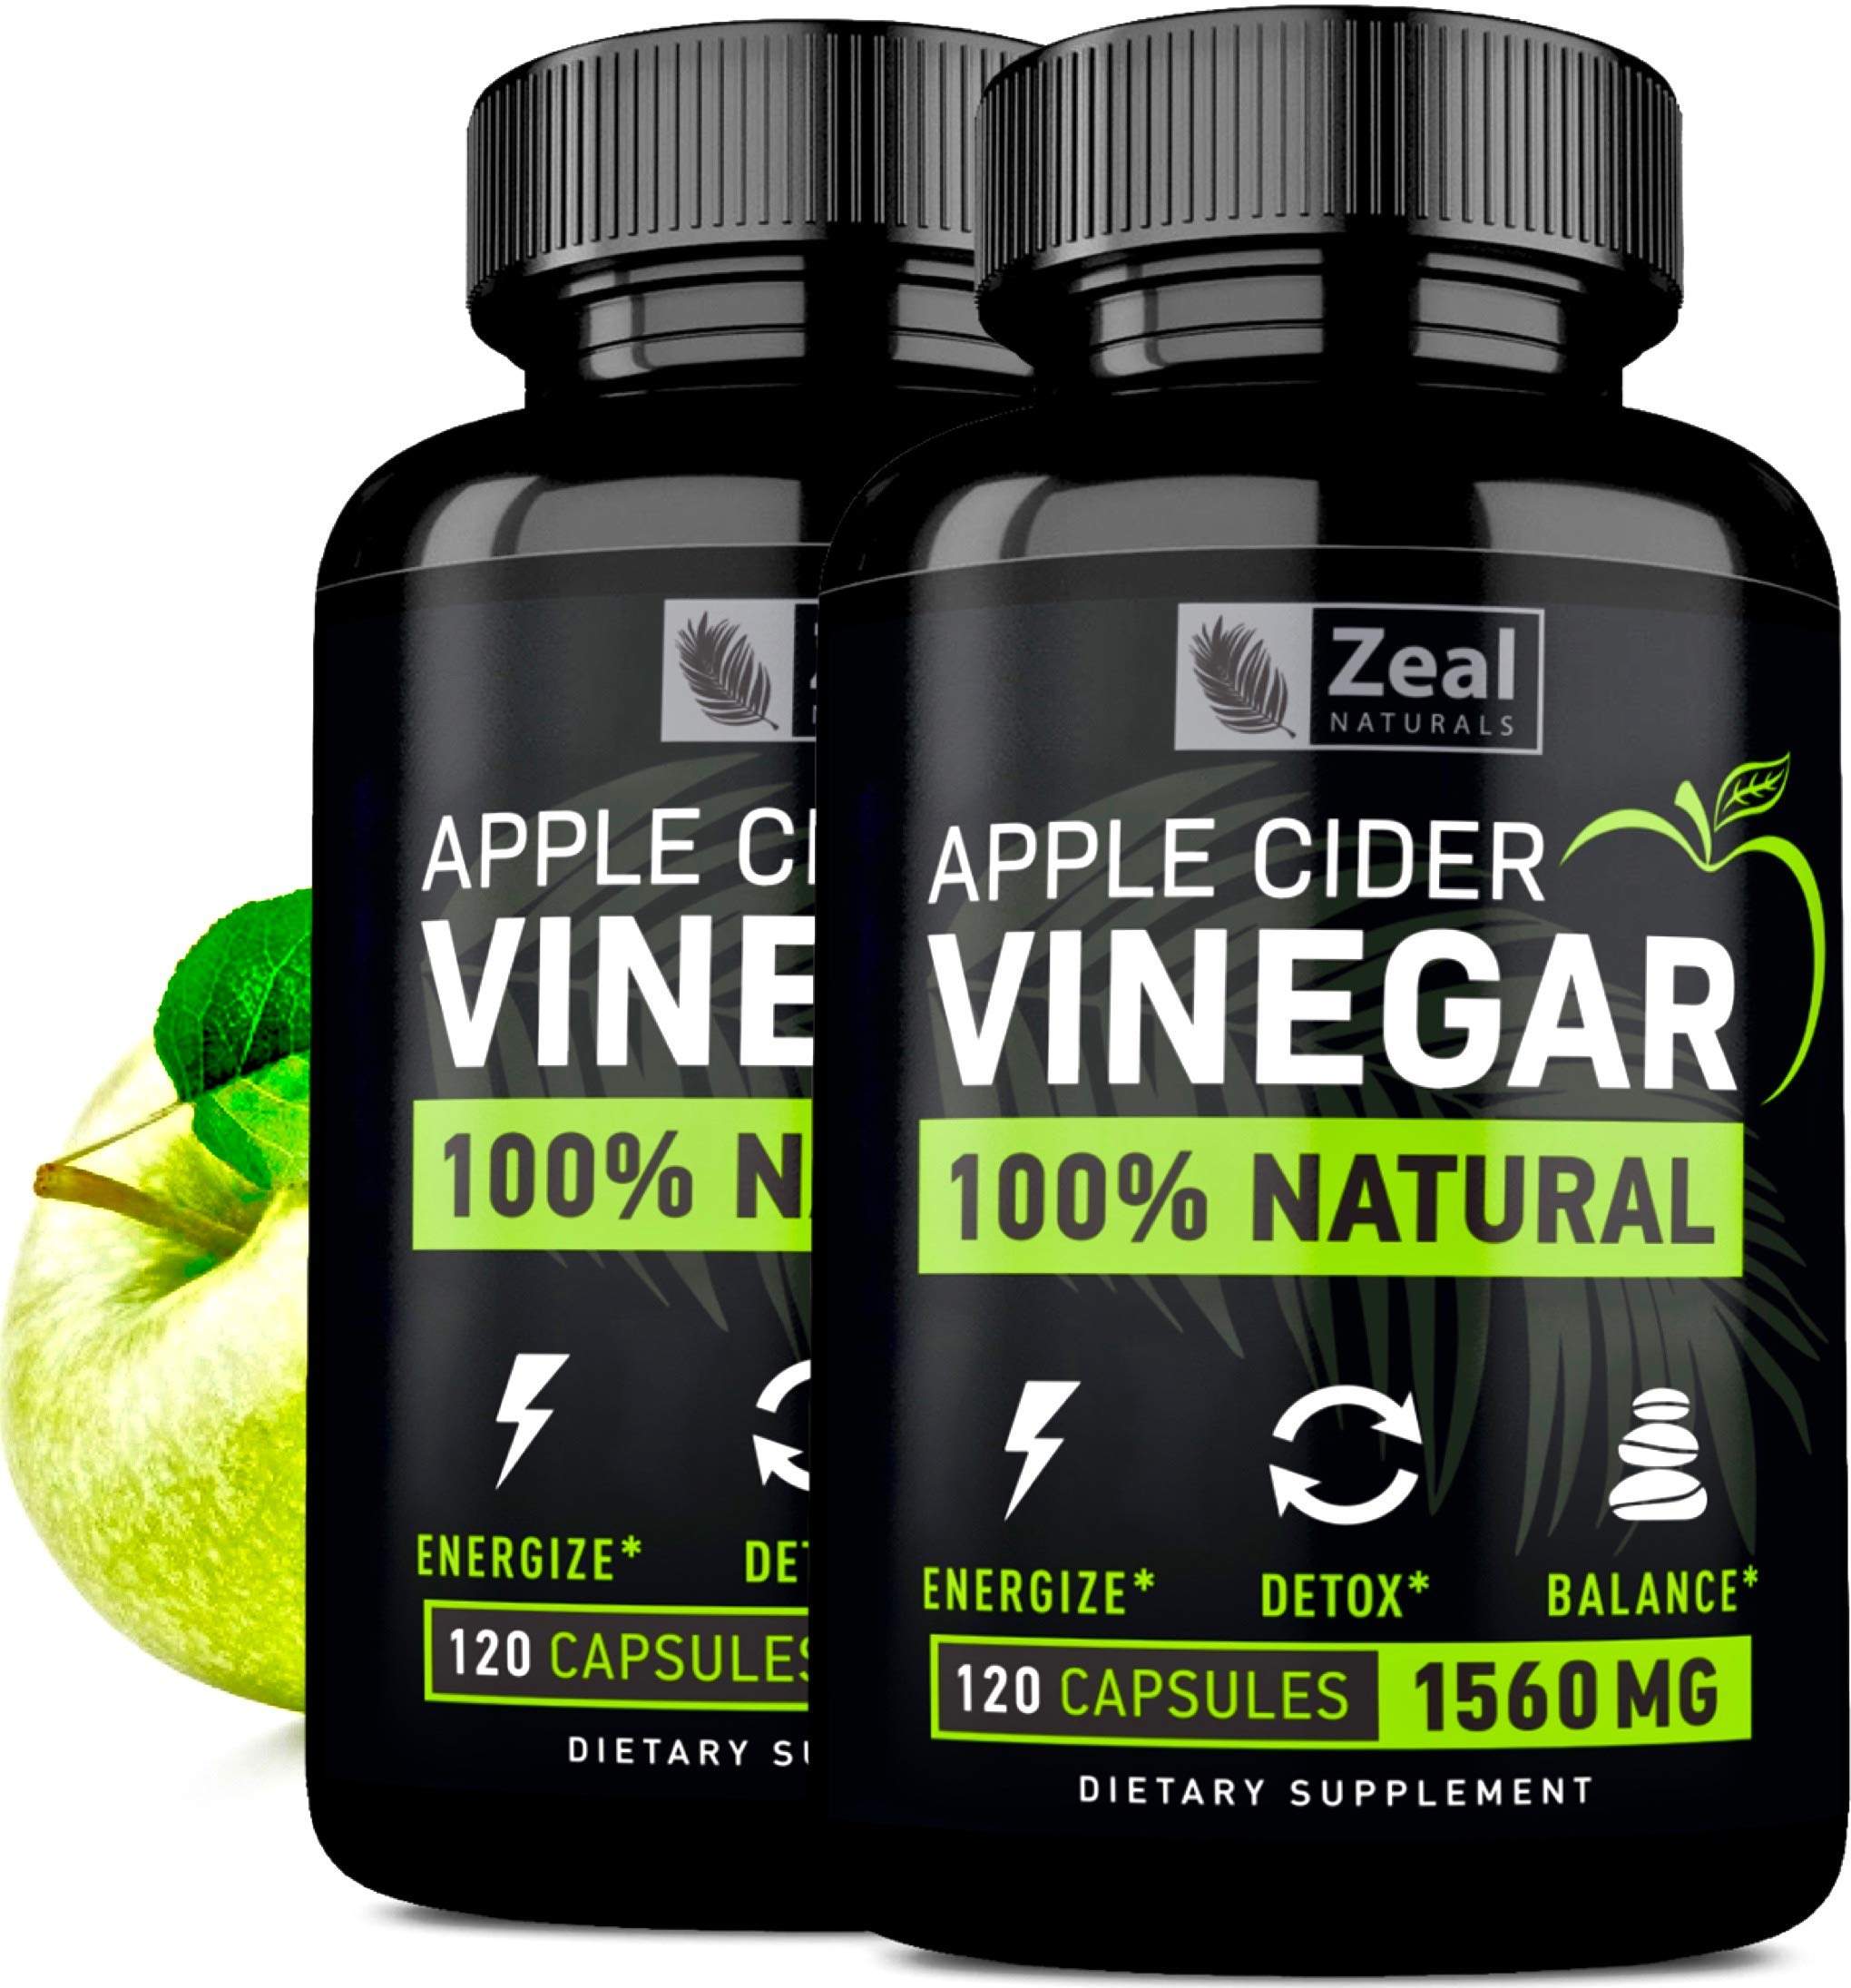 (2-Pack) 100% Natural Raw Apple Cider Vinegar Pills (1500 mg | 240 Capsules) Pure Apple Cider Vinegar Tablets with Cayenne Pepper for Detox Cleanse Weight Loss, Appetite Suppressant, Bloating Relief